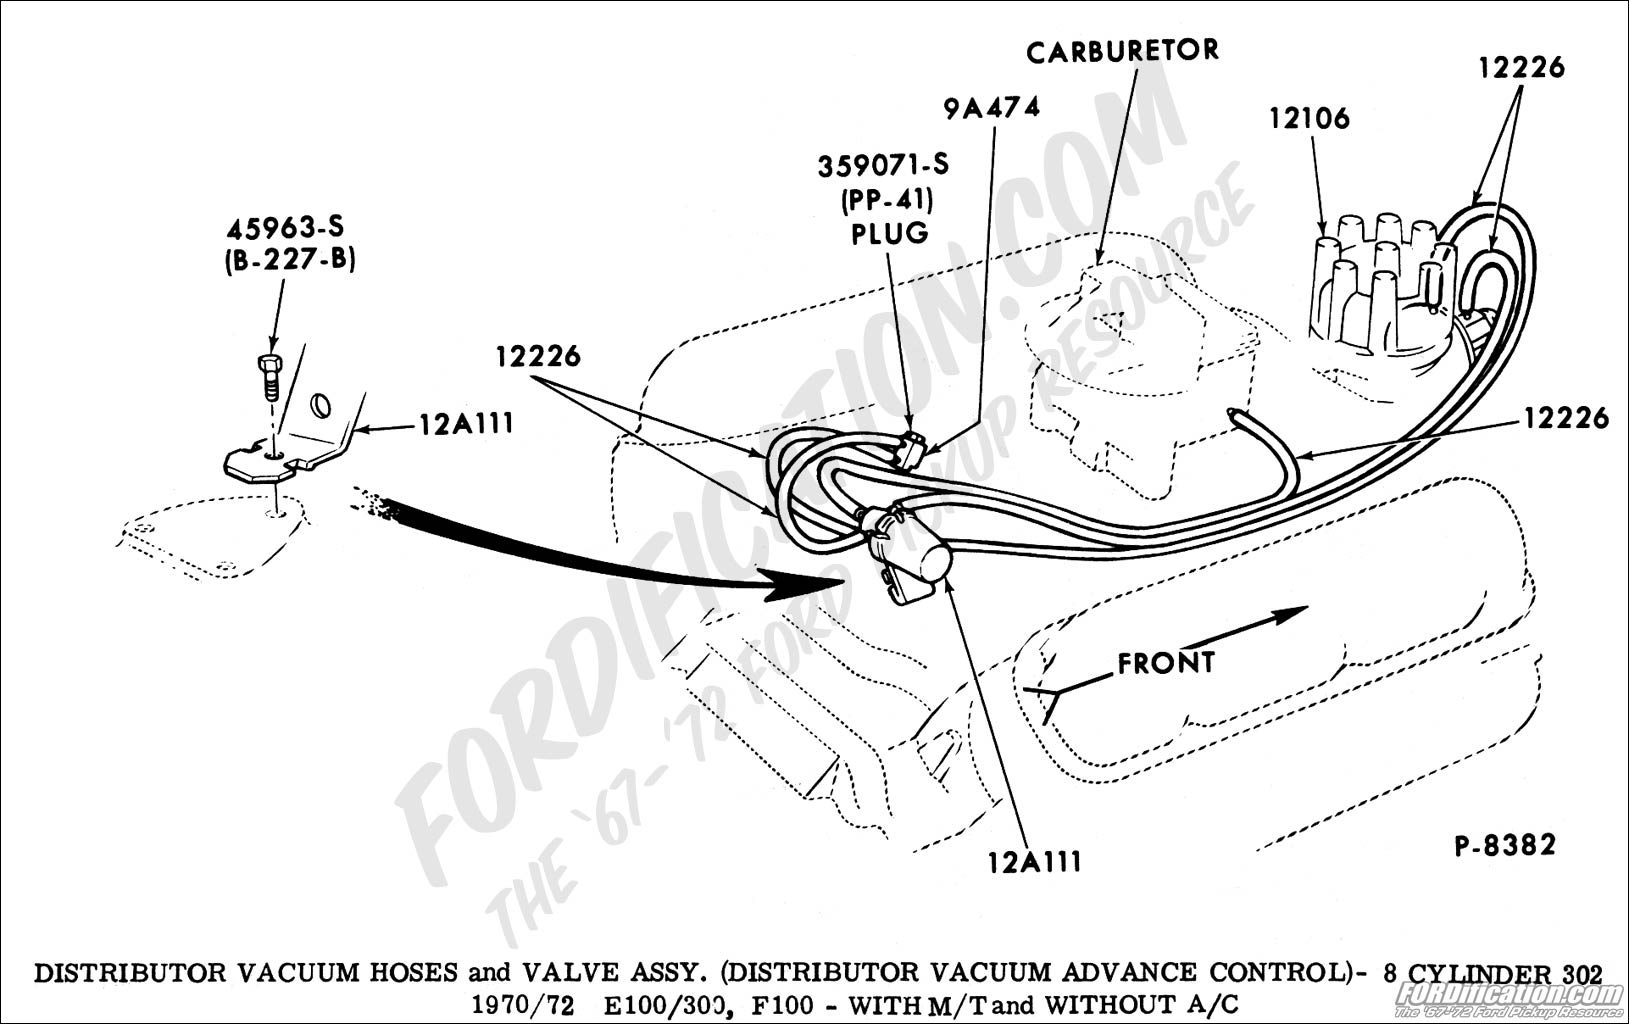 1965 mustang wiring diagrams electrical schematics 1971 vw super beetle diagram ford truck technical drawings and - section i